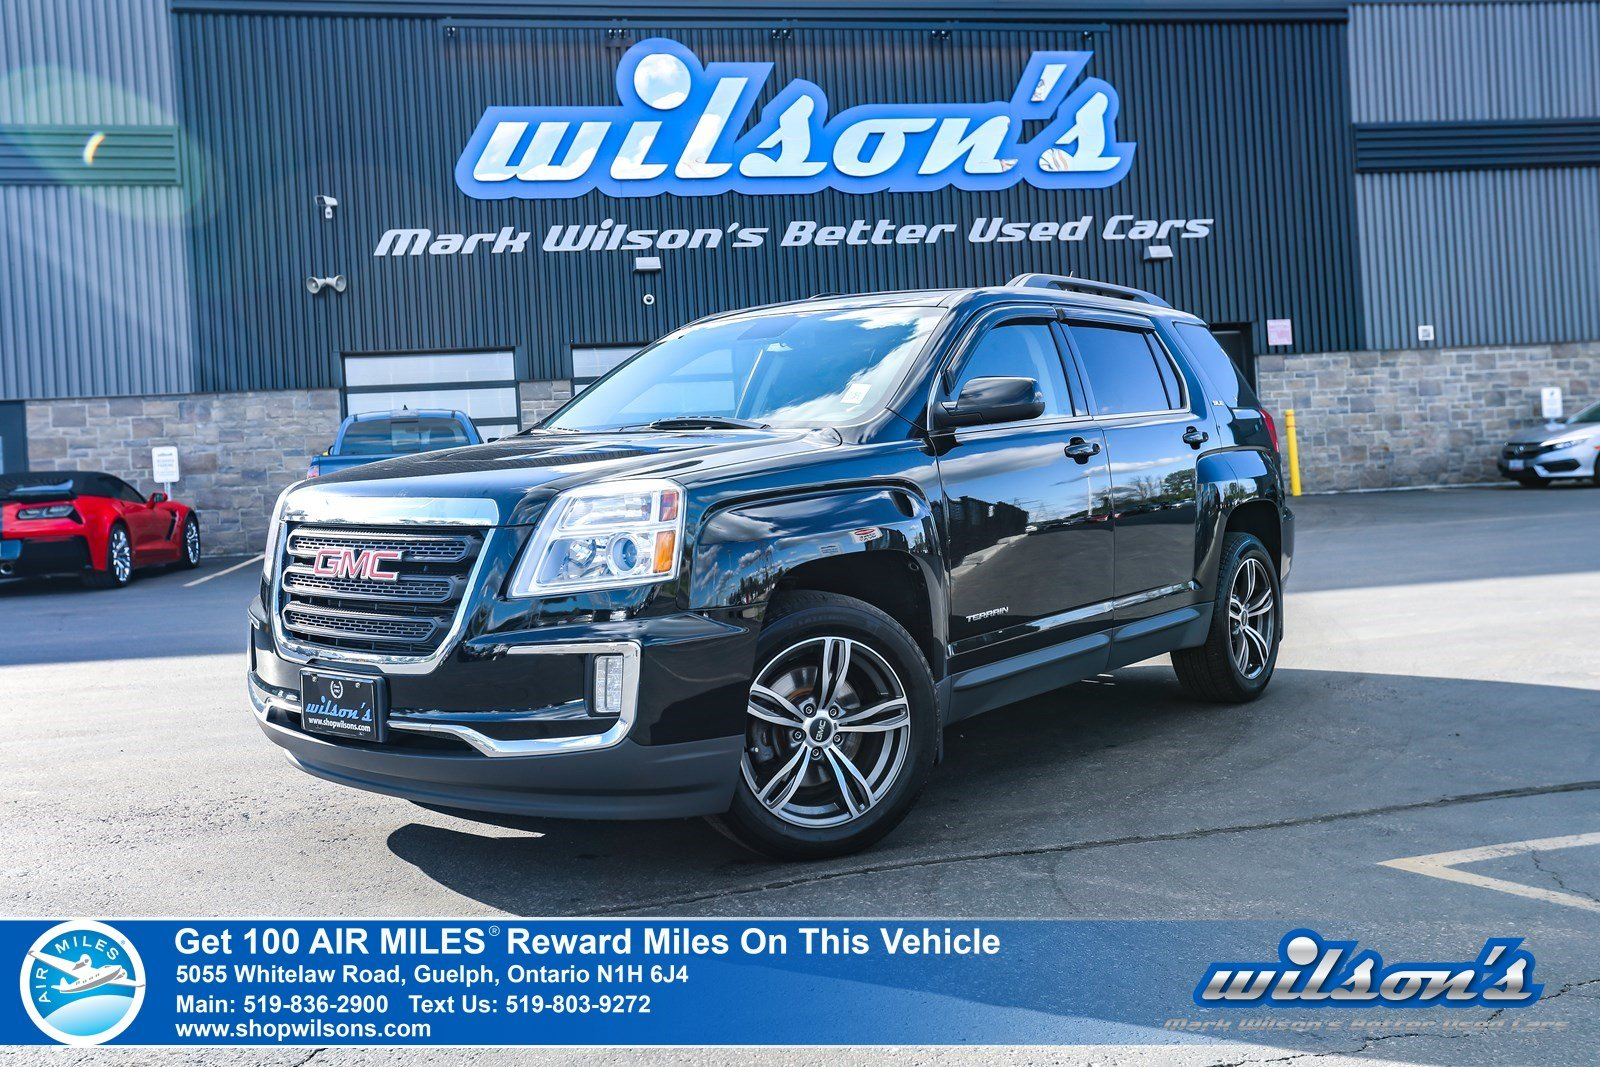 Certified Pre-Owned 2017 GMC Terrain SLE W/ SLE2 - Rear Camera, Bluetooth, Remote Start, Heated + Power Seats, Pioneer Audio and more!